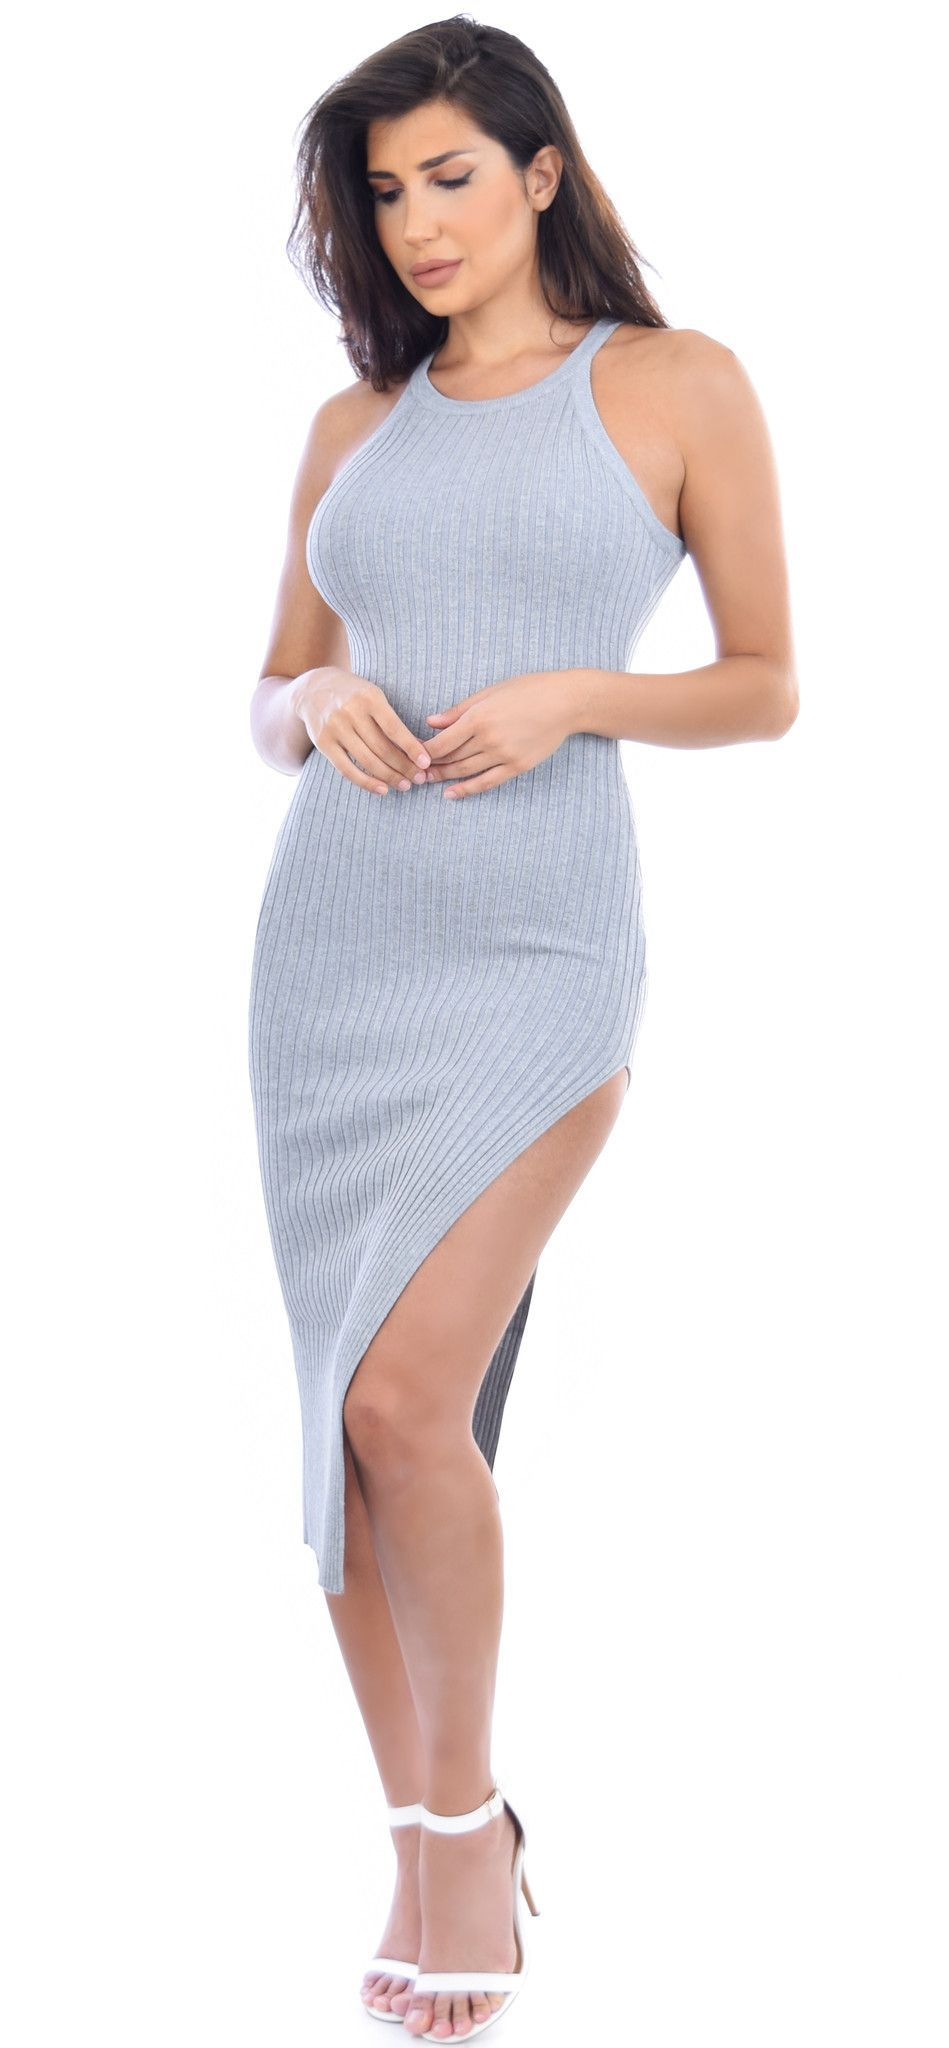 c86c11b86 ... Ribbed - High side slit - Stretchy - Unlined - No closure Model is 5 8